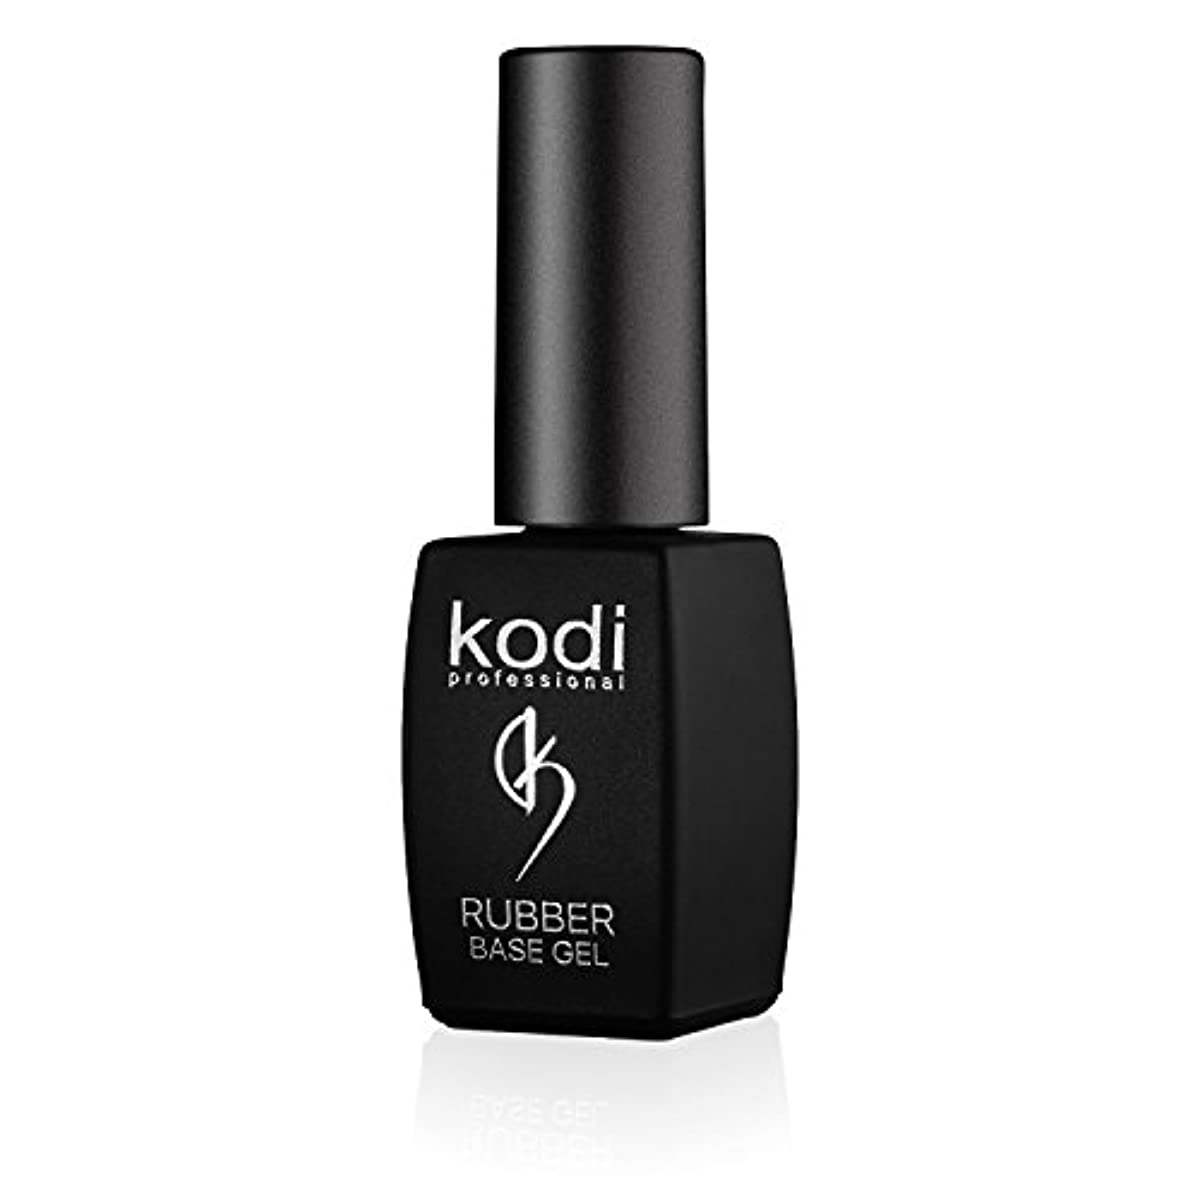 またはどちらかトイレバラ色Professional Rubber Base Gel By Kodi | 8ml 0.27 oz | Soak Off, Polish Fingernails Coat Gel | For Long Lasting...